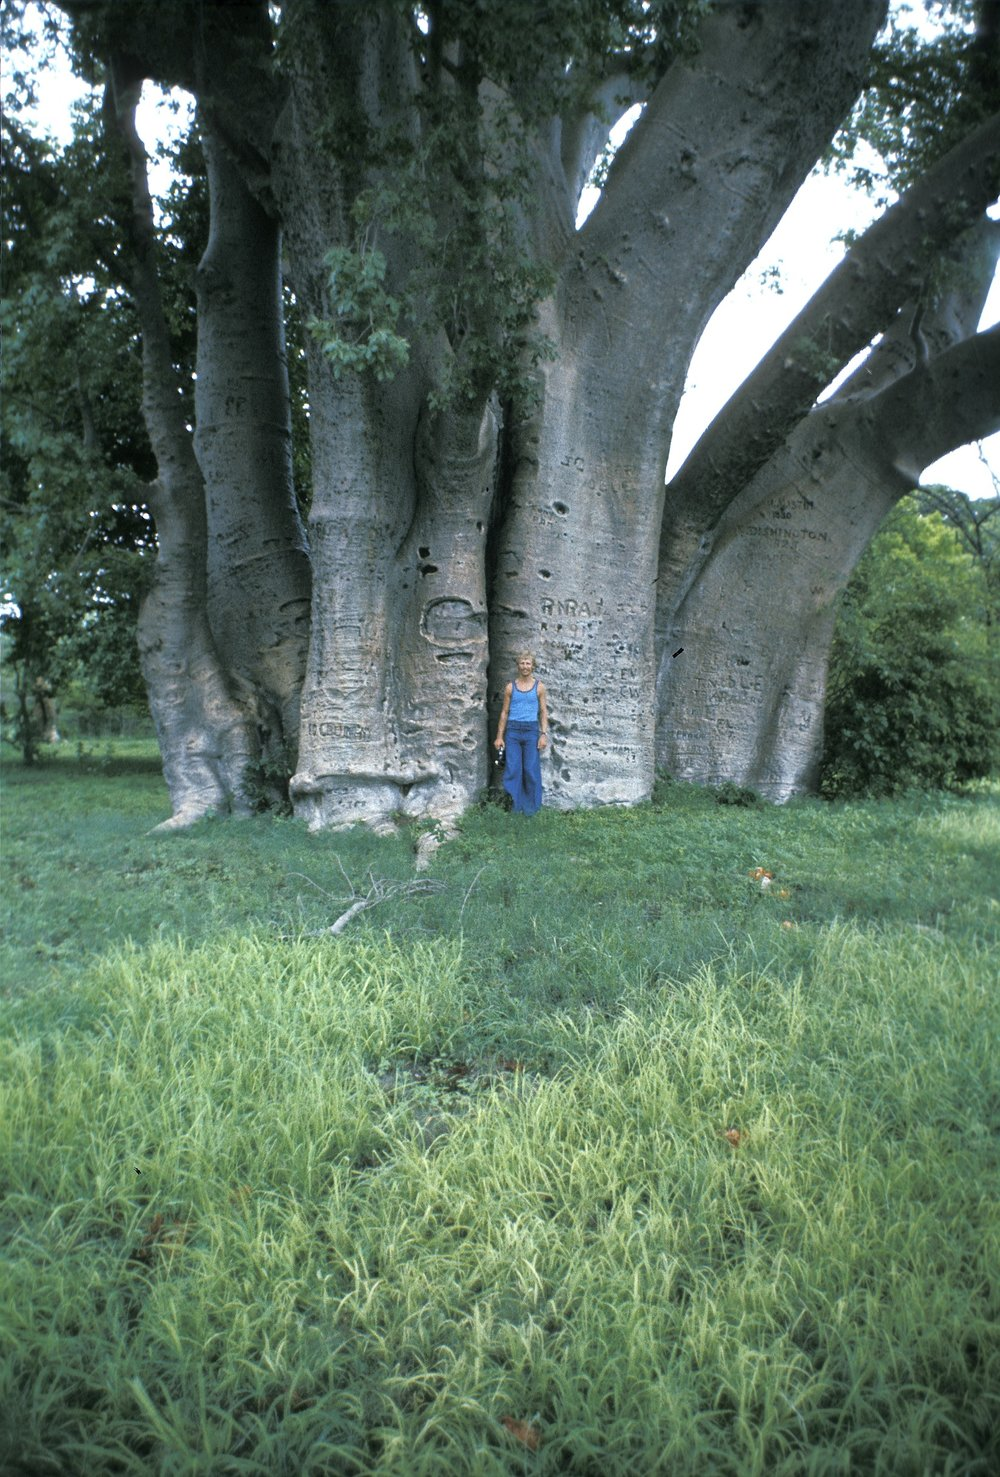 My friend Jeff under the Baobab tree.